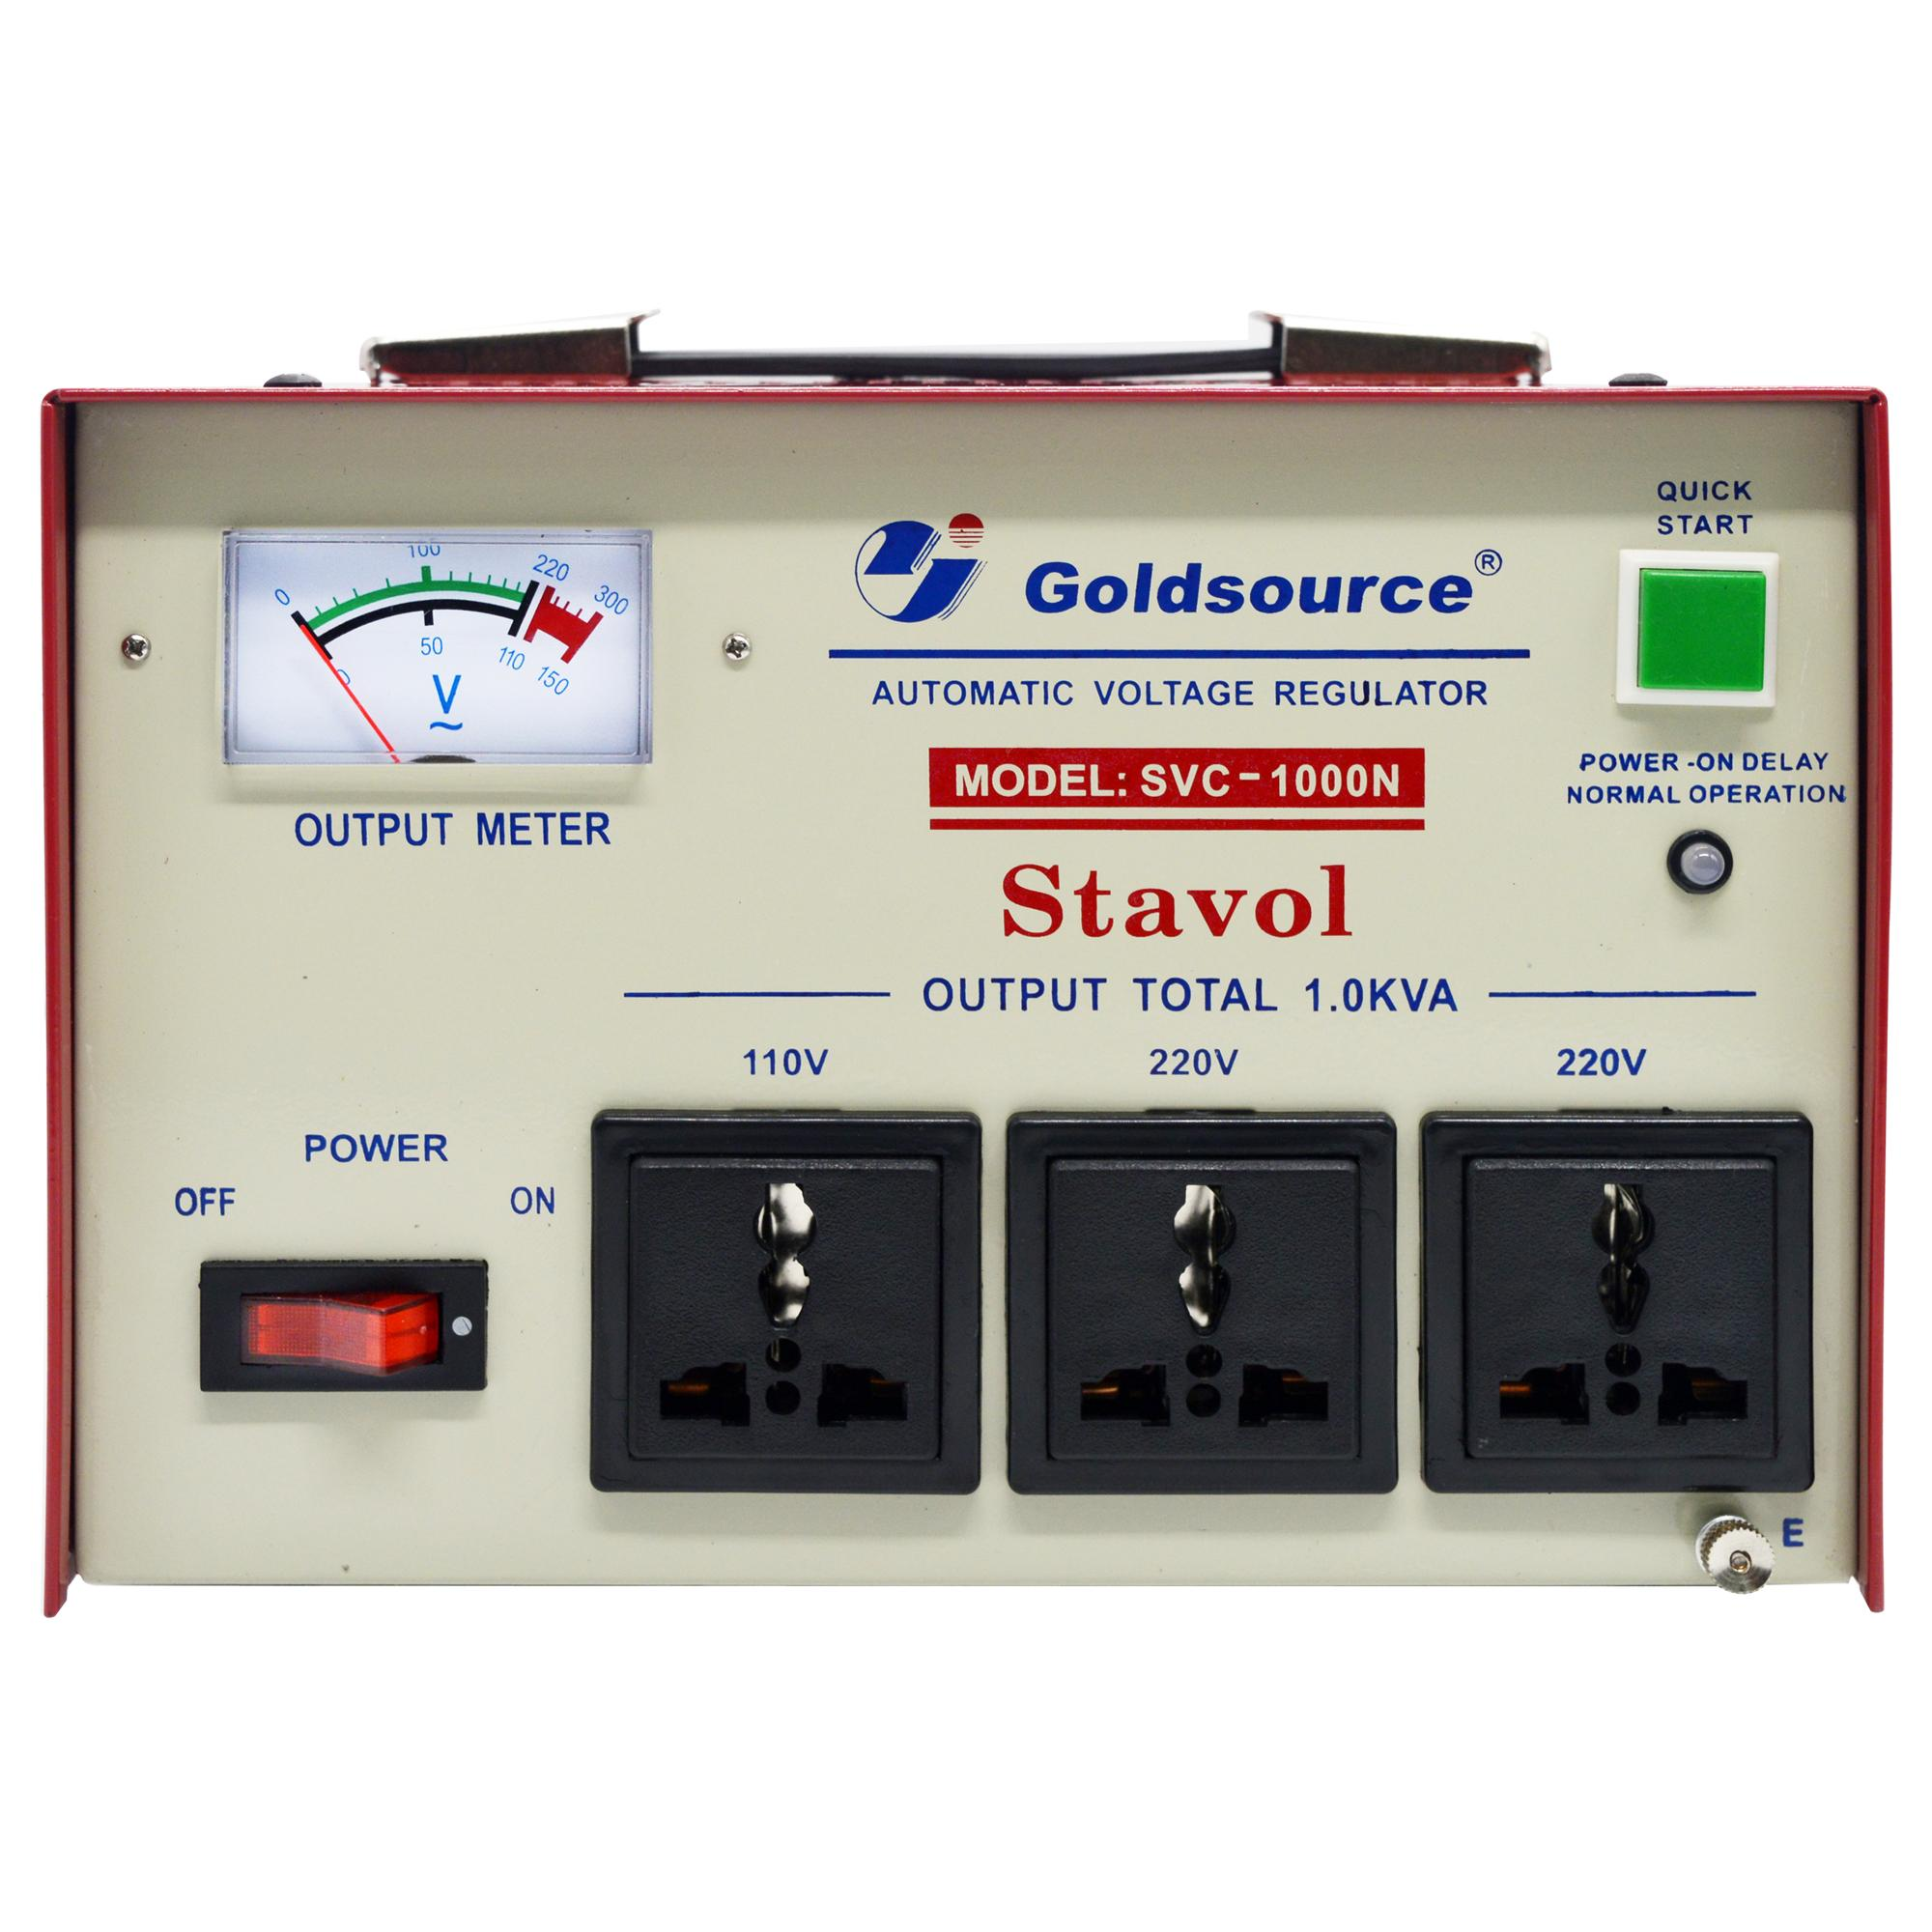 Goldsource Philippines Price List Power Supply For Regulated 220vac To 24vdc Using Voltage Regulator Avr With On Delay 1000w